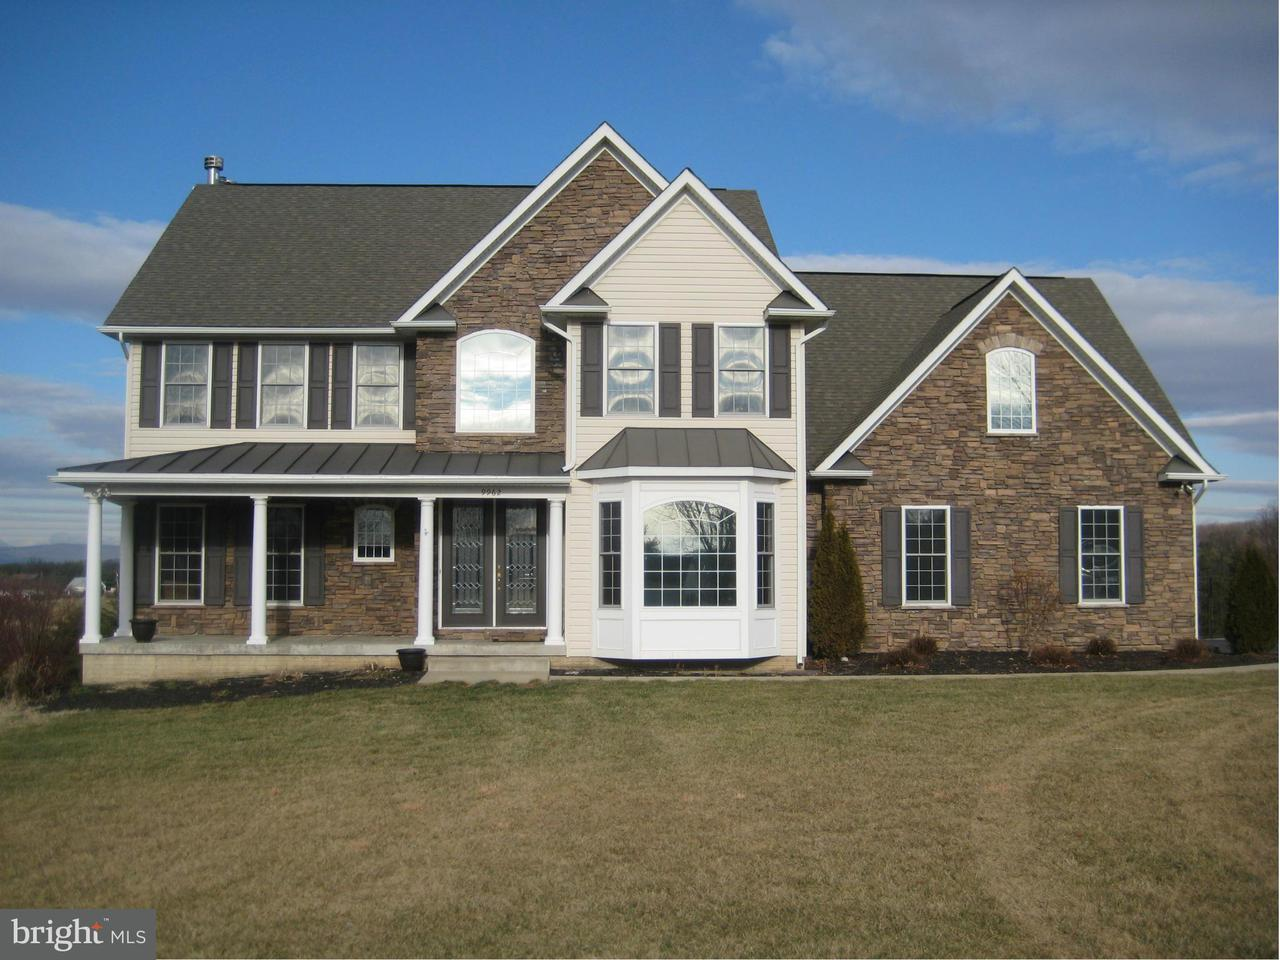 Vivienda unifamiliar por un Venta en 11924 OAK HILL Road 11924 OAK HILL Road Woodsboro, Maryland 21798 Estados Unidos